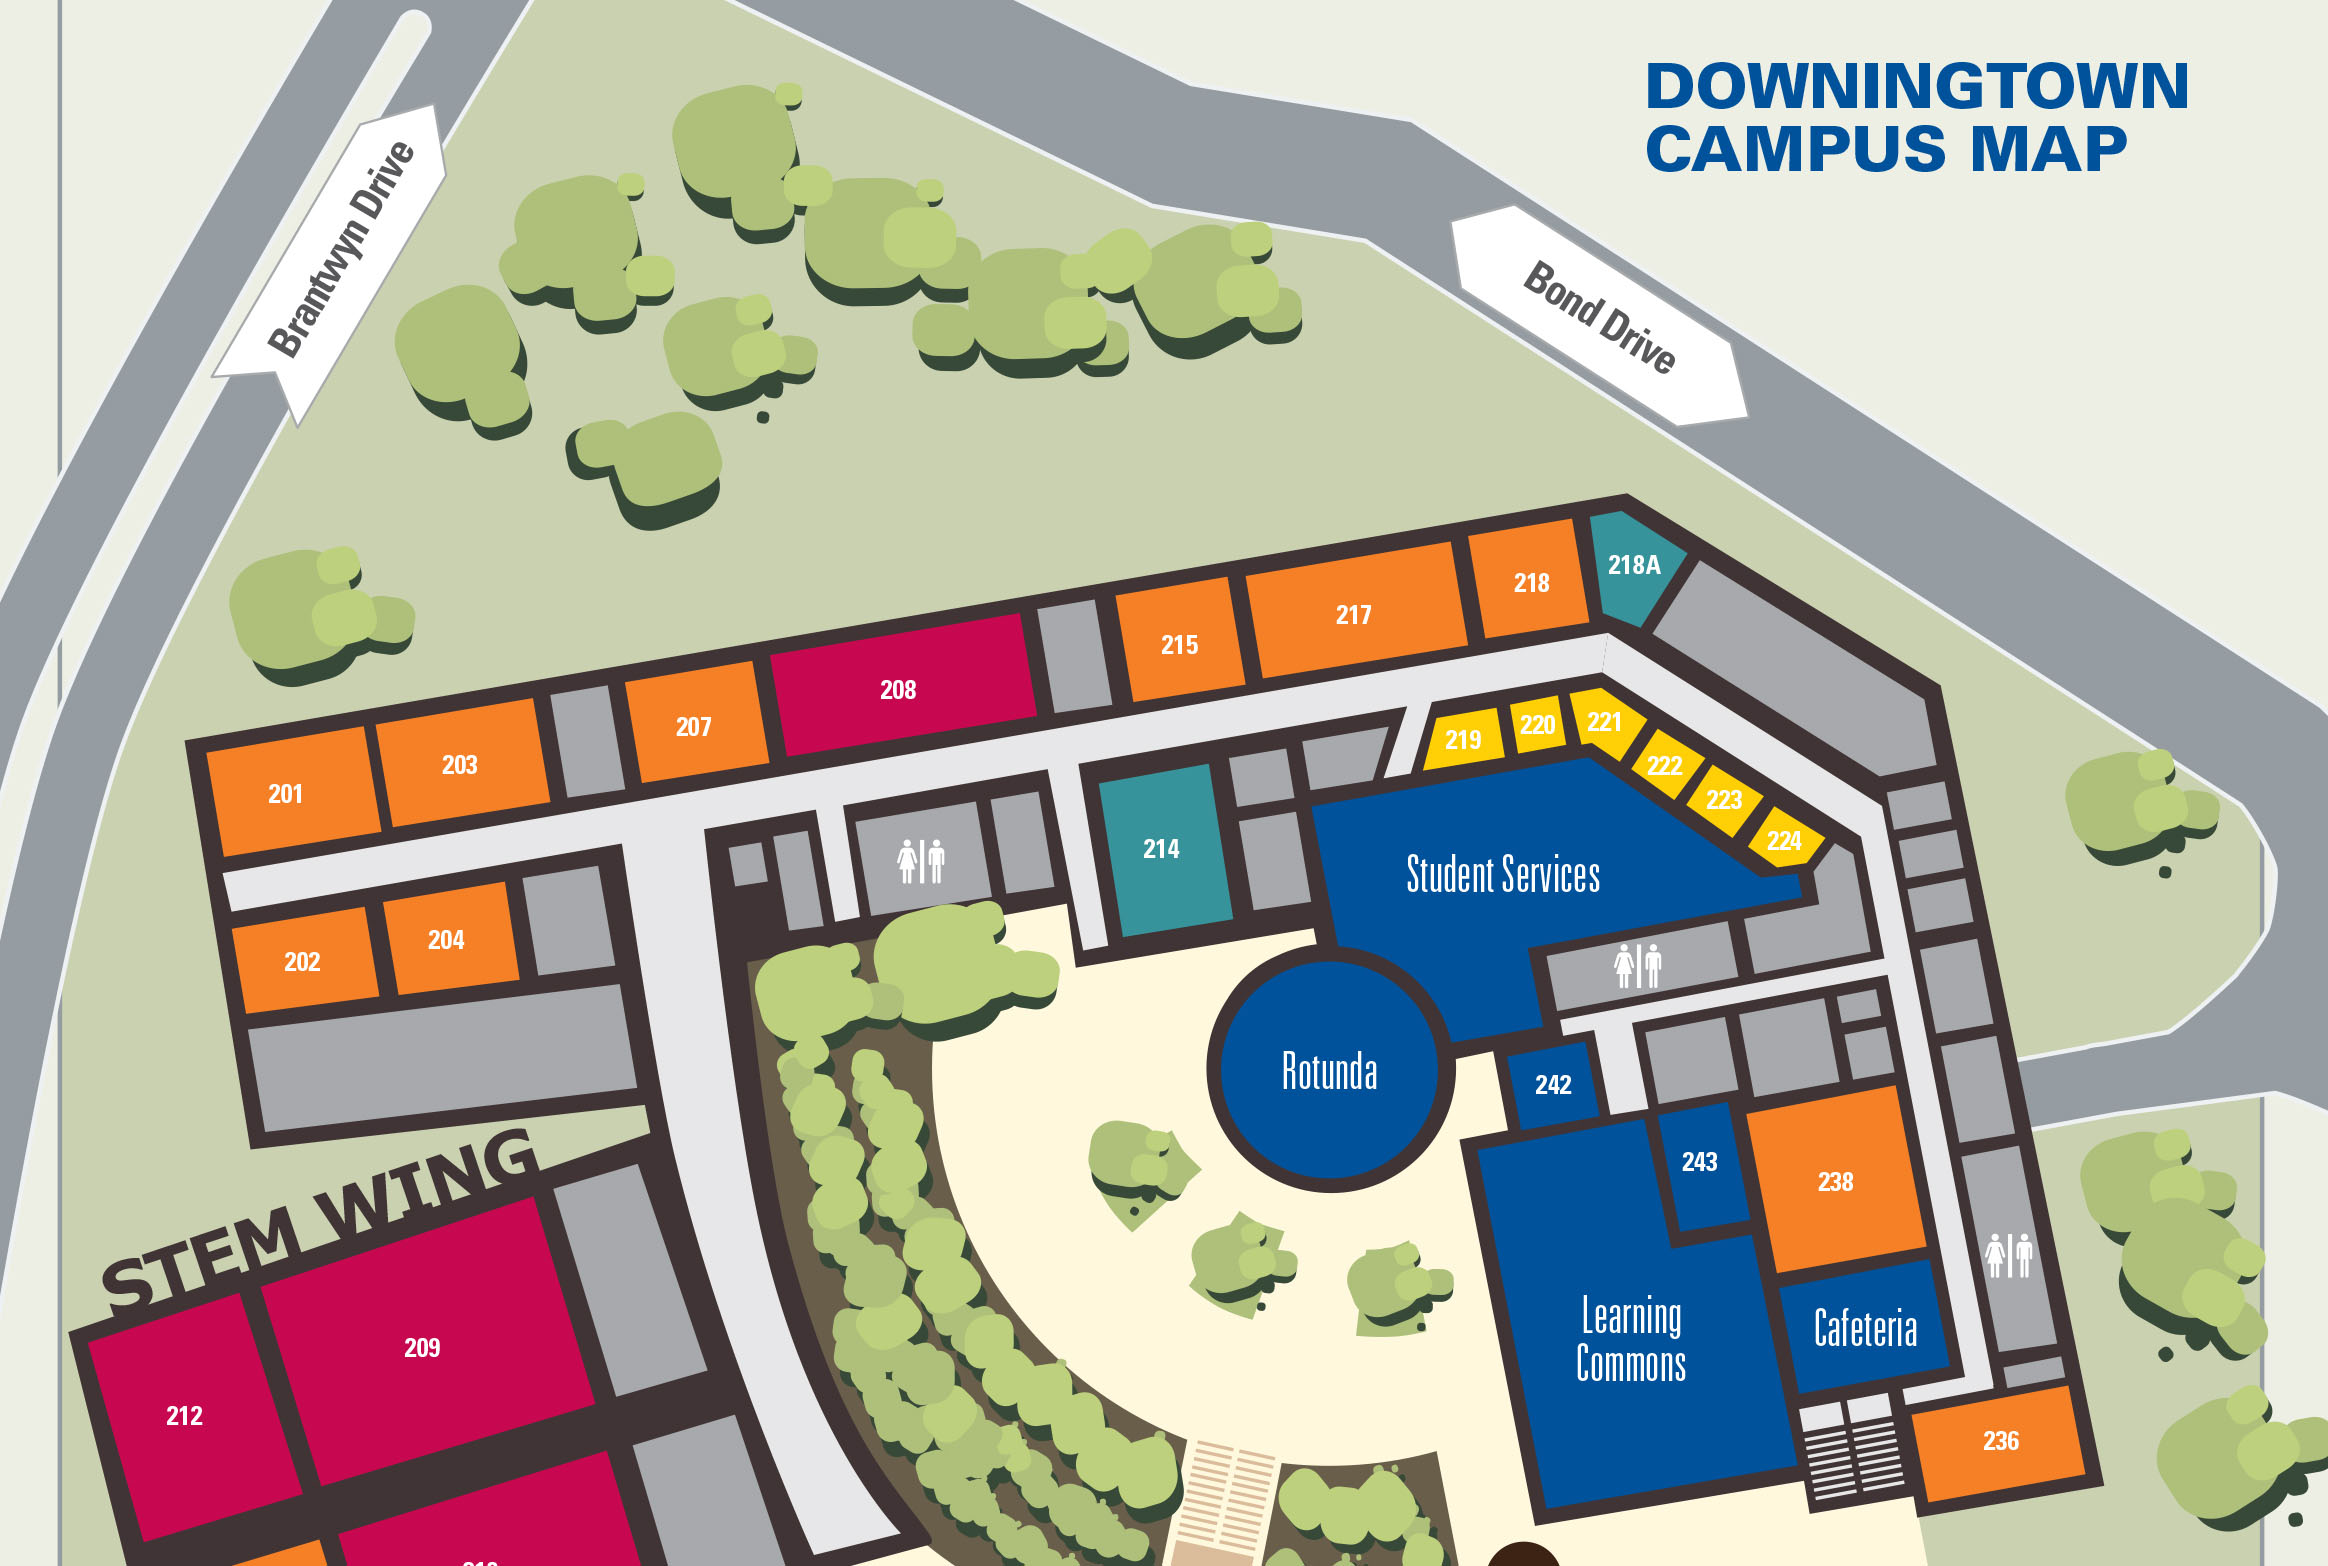 Downingtown Campus Map